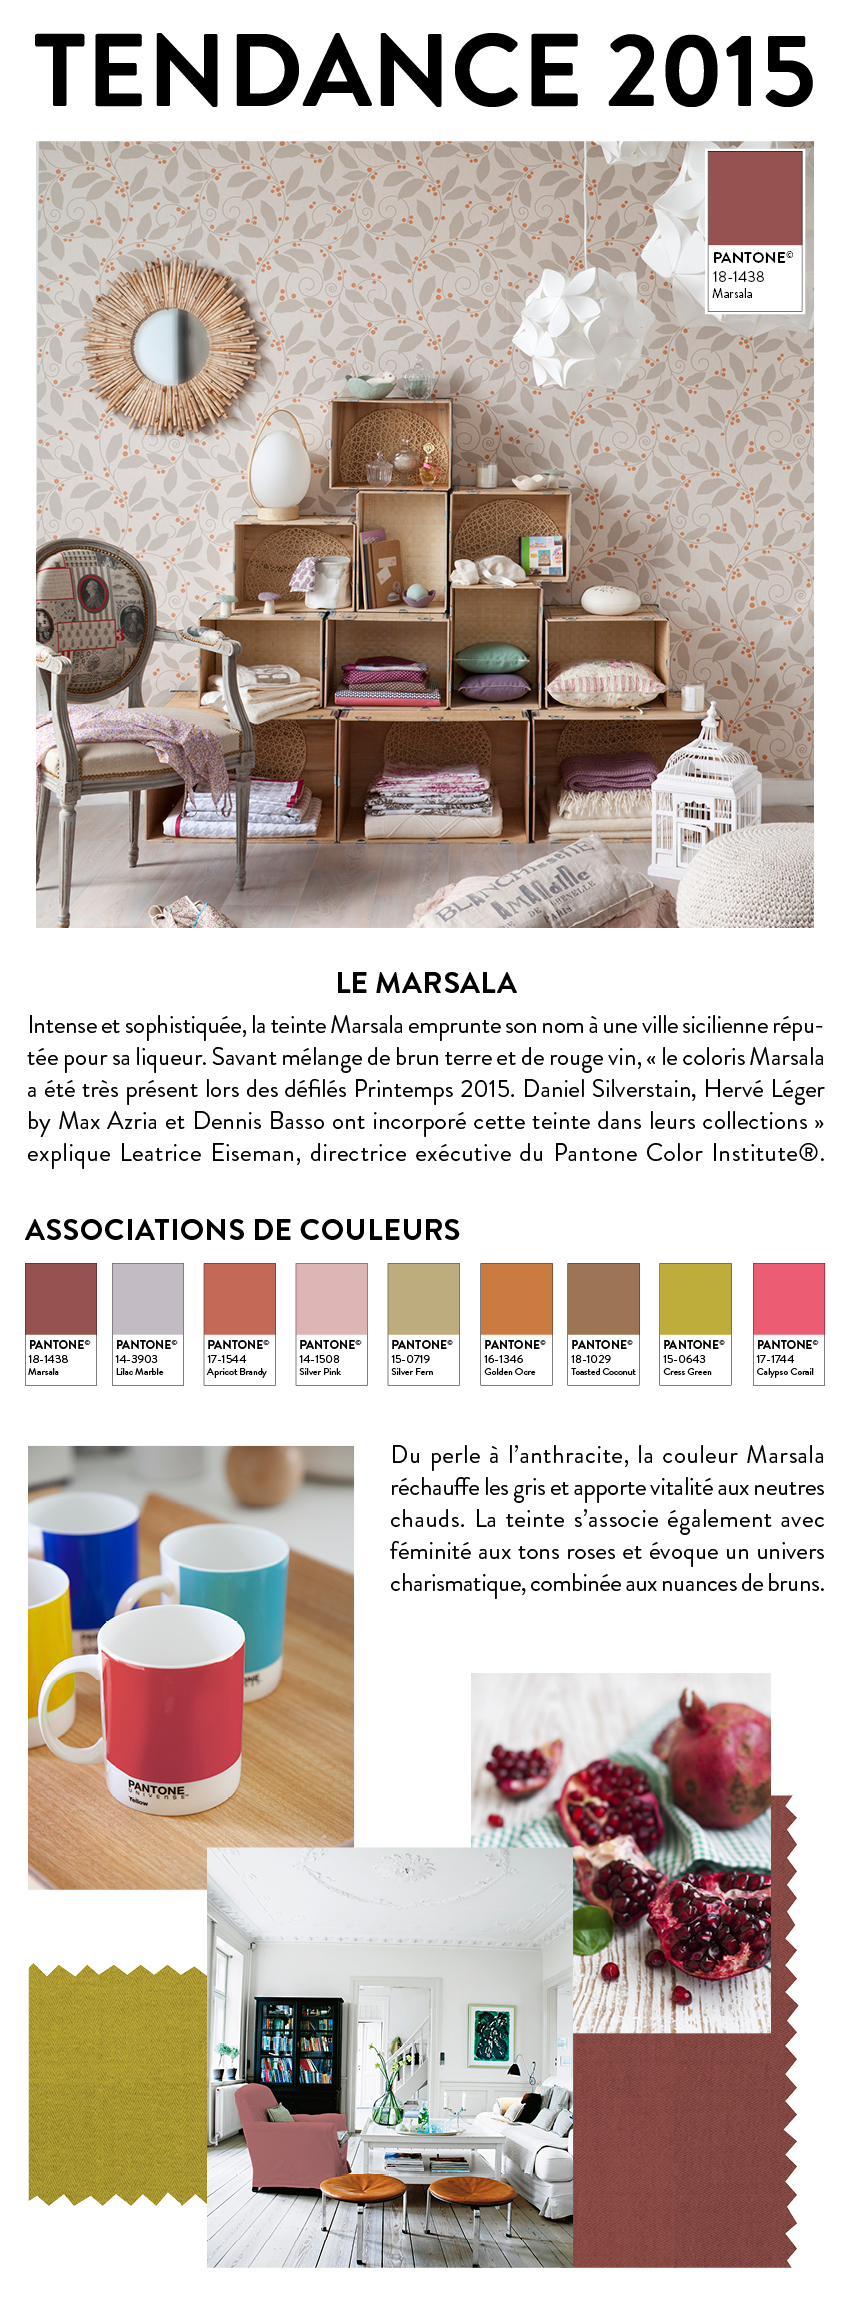 la couleur marsala westwing magazine. Black Bedroom Furniture Sets. Home Design Ideas